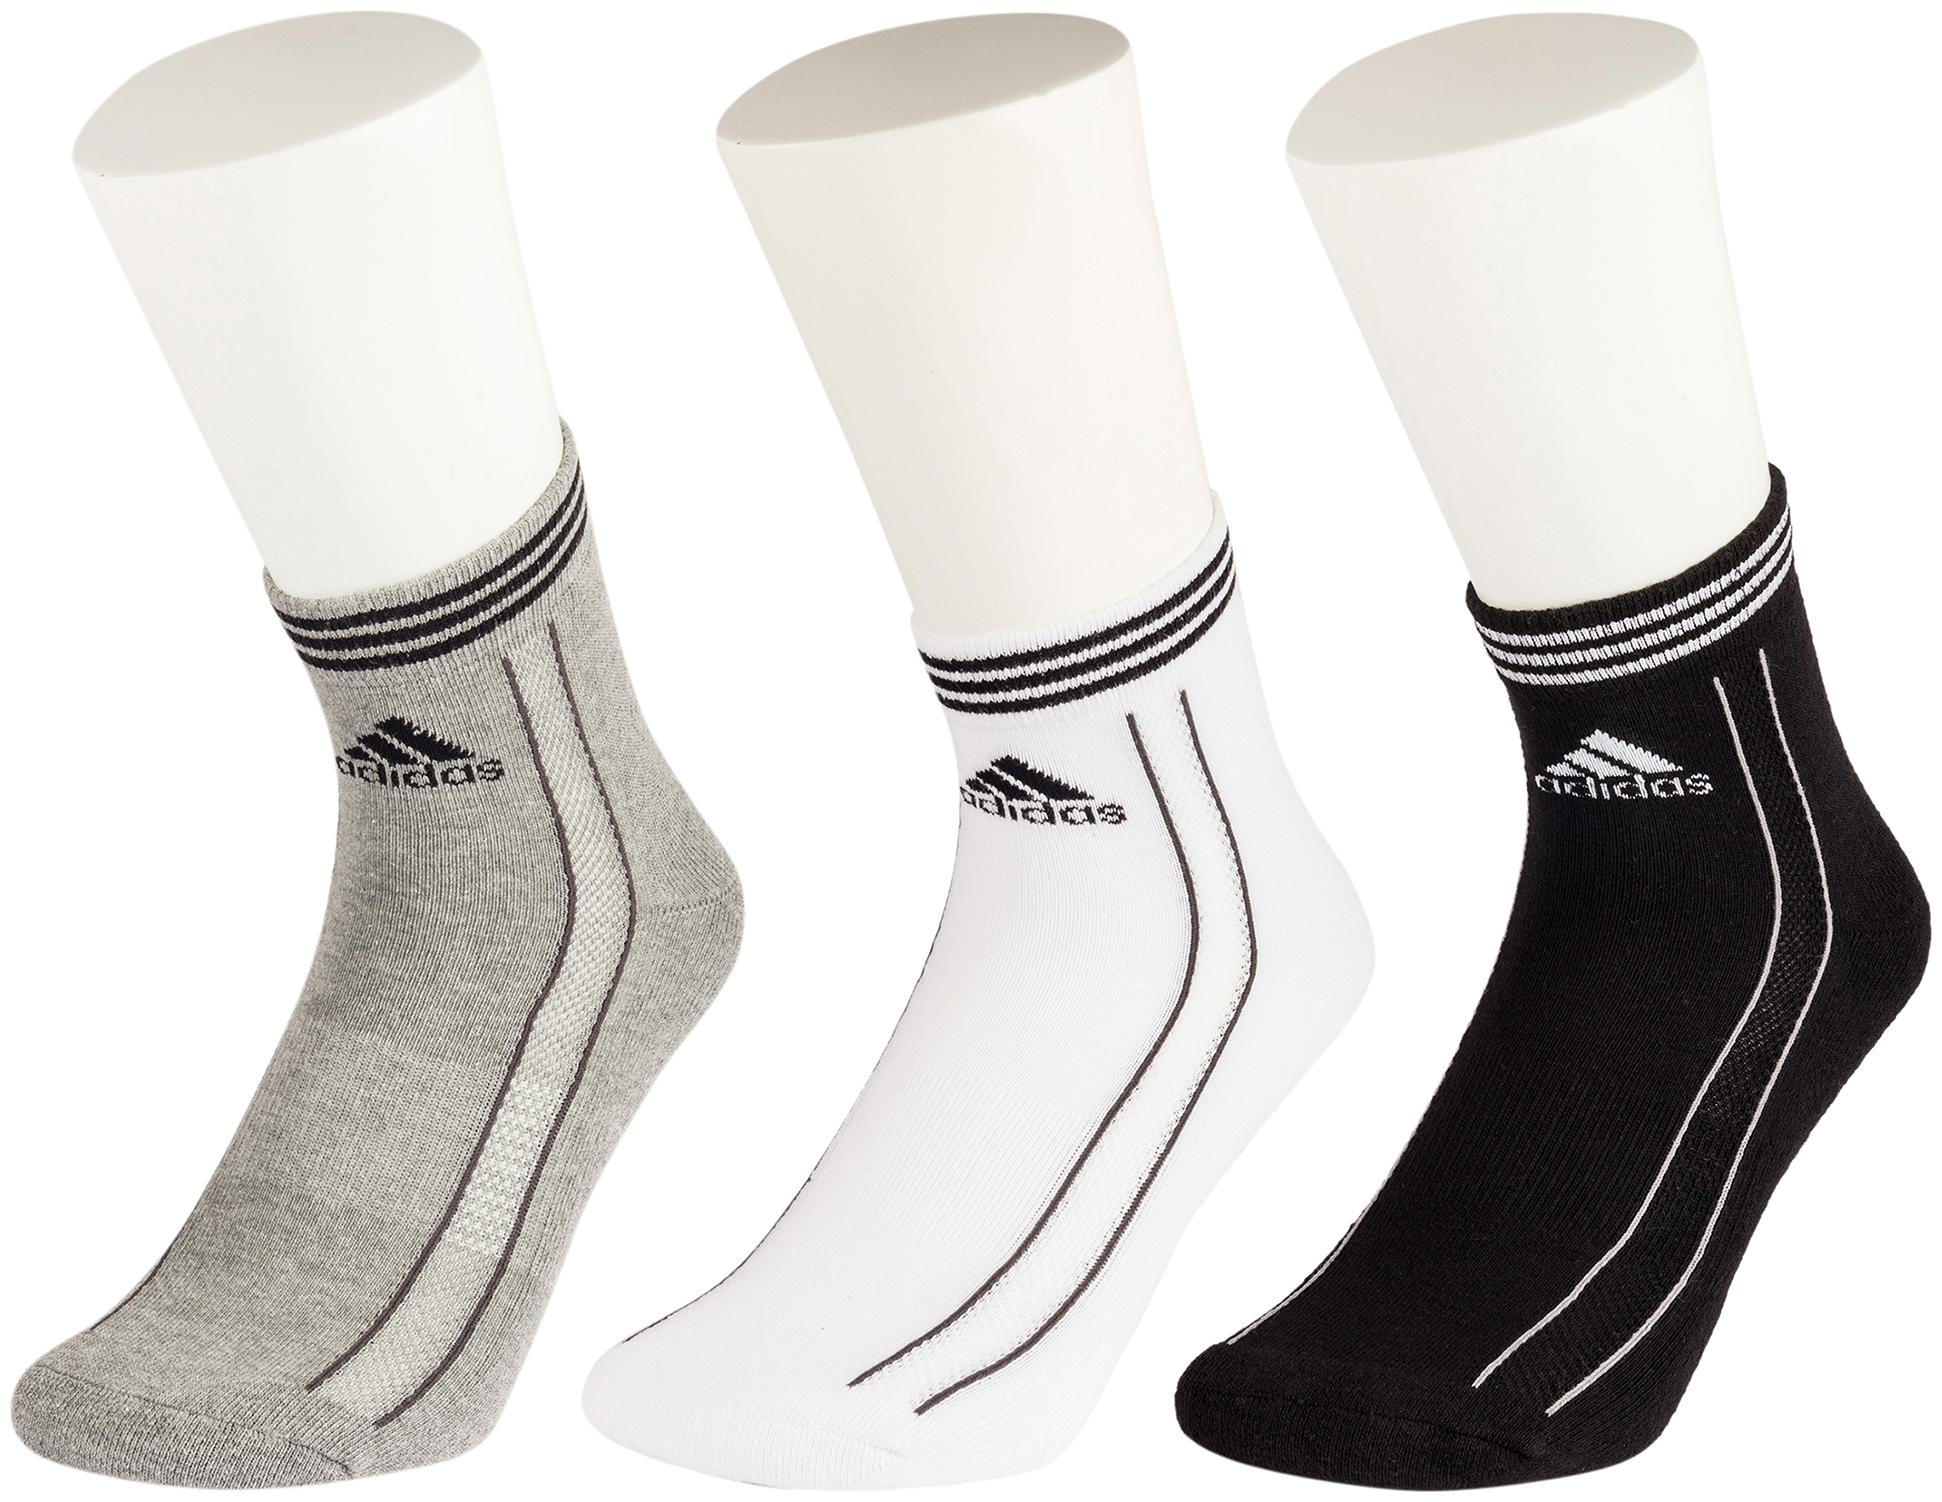 Adidas Multi Wool Ankle length socks   3 pairs